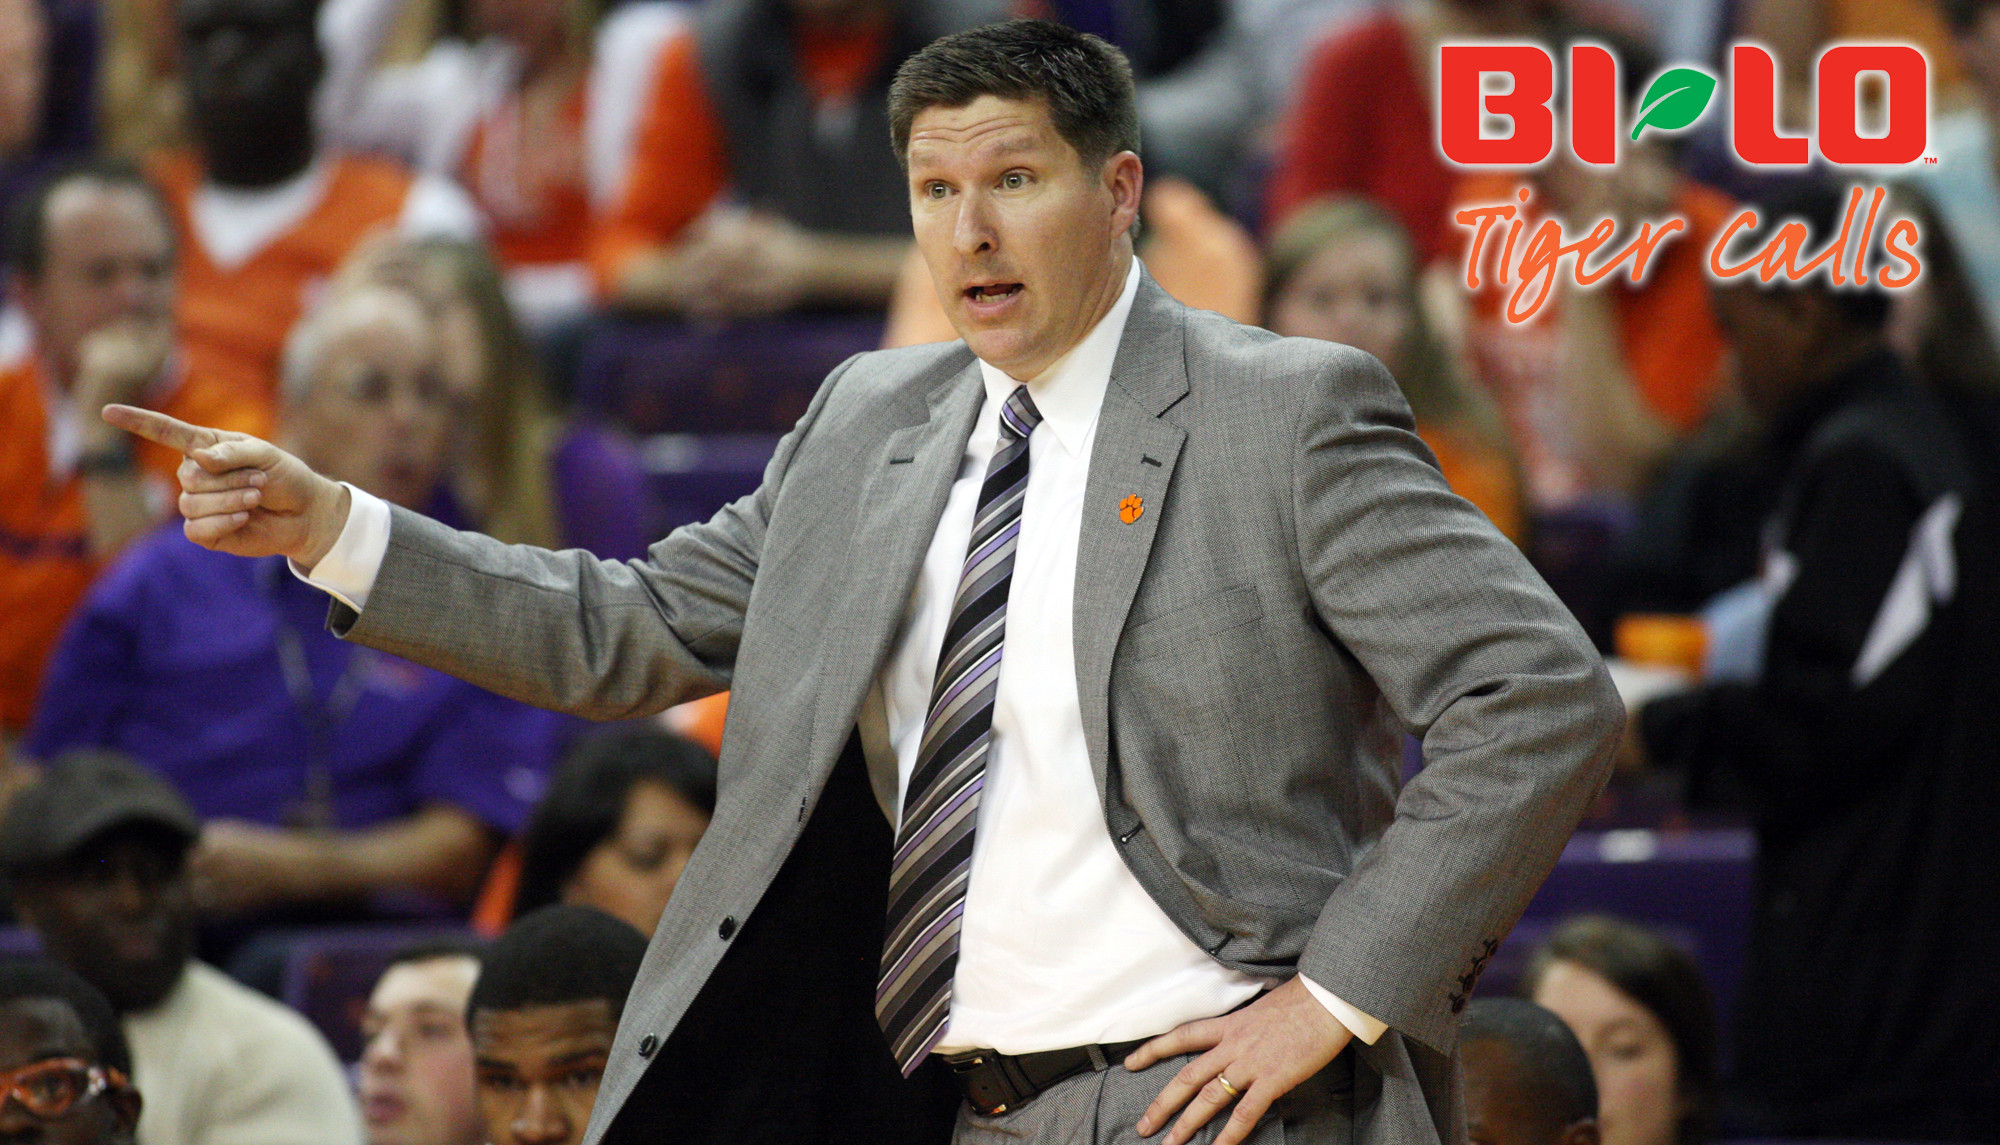 BI-LO Tiger Calls with Brad Brownell Wednesday Night